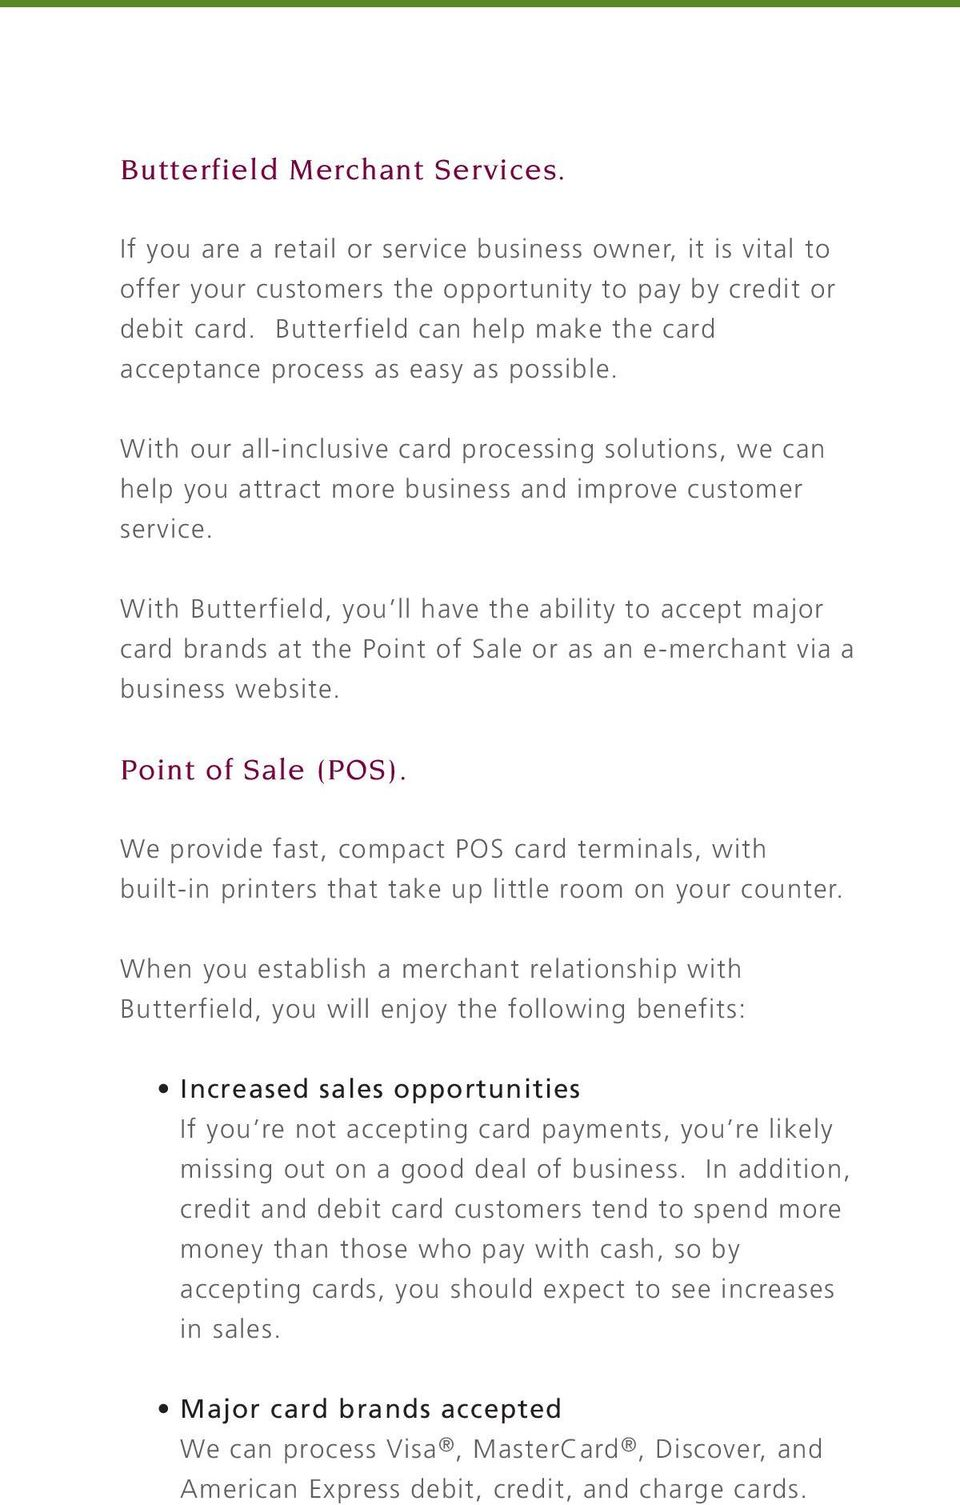 With Butterfield, you ll have the ability to accept major card brands at the Point of Sale or as an e-merchant via a business website. Point of Sale (POS).